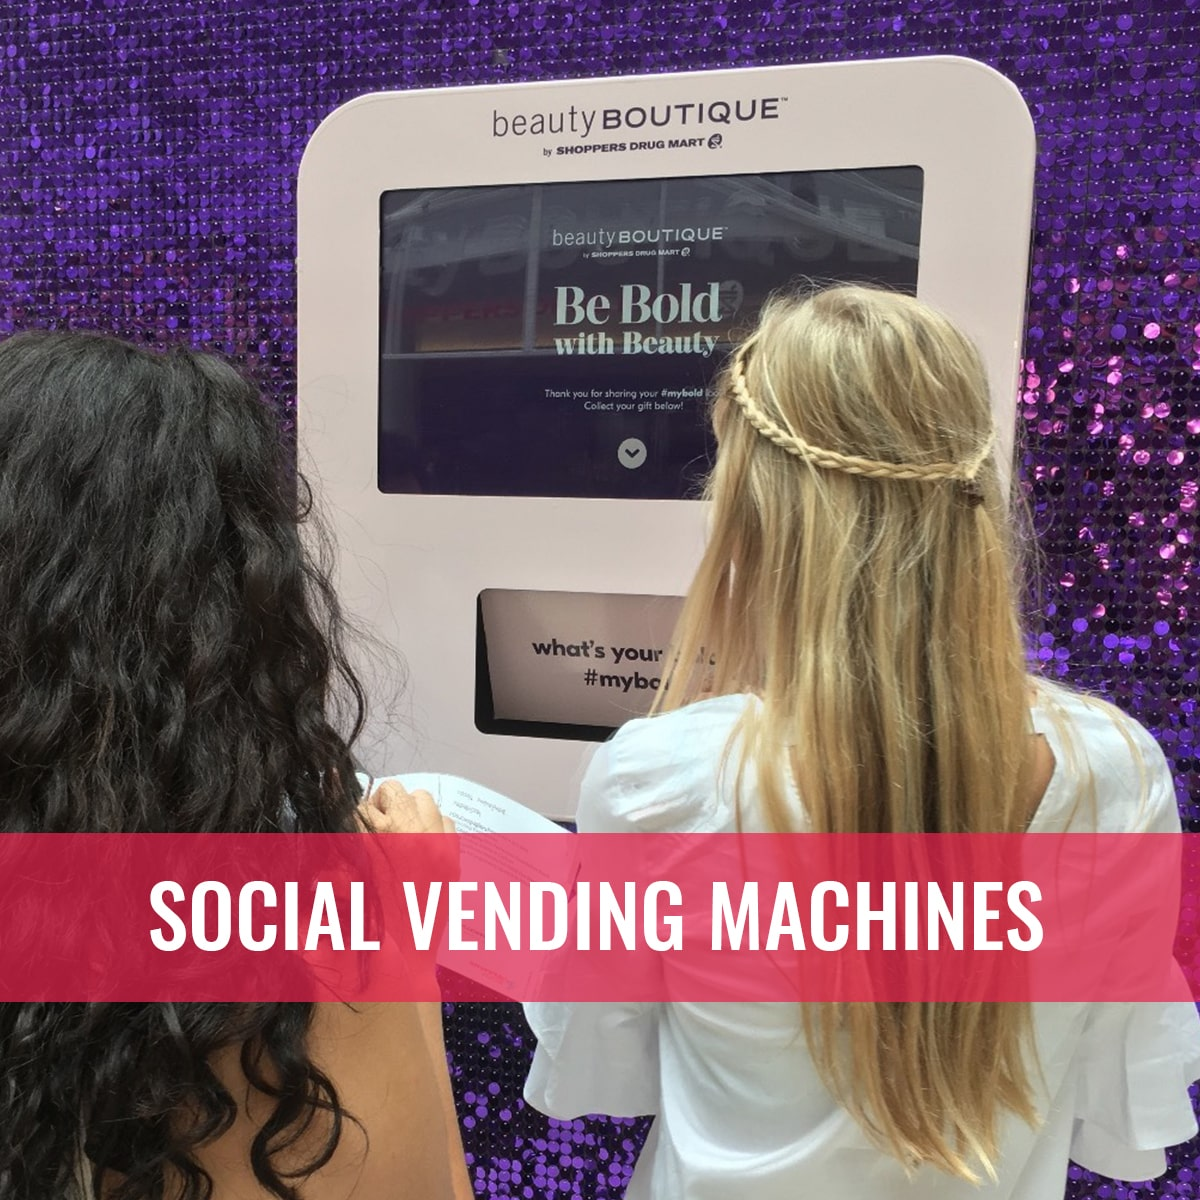 be bold Social Vending Machine